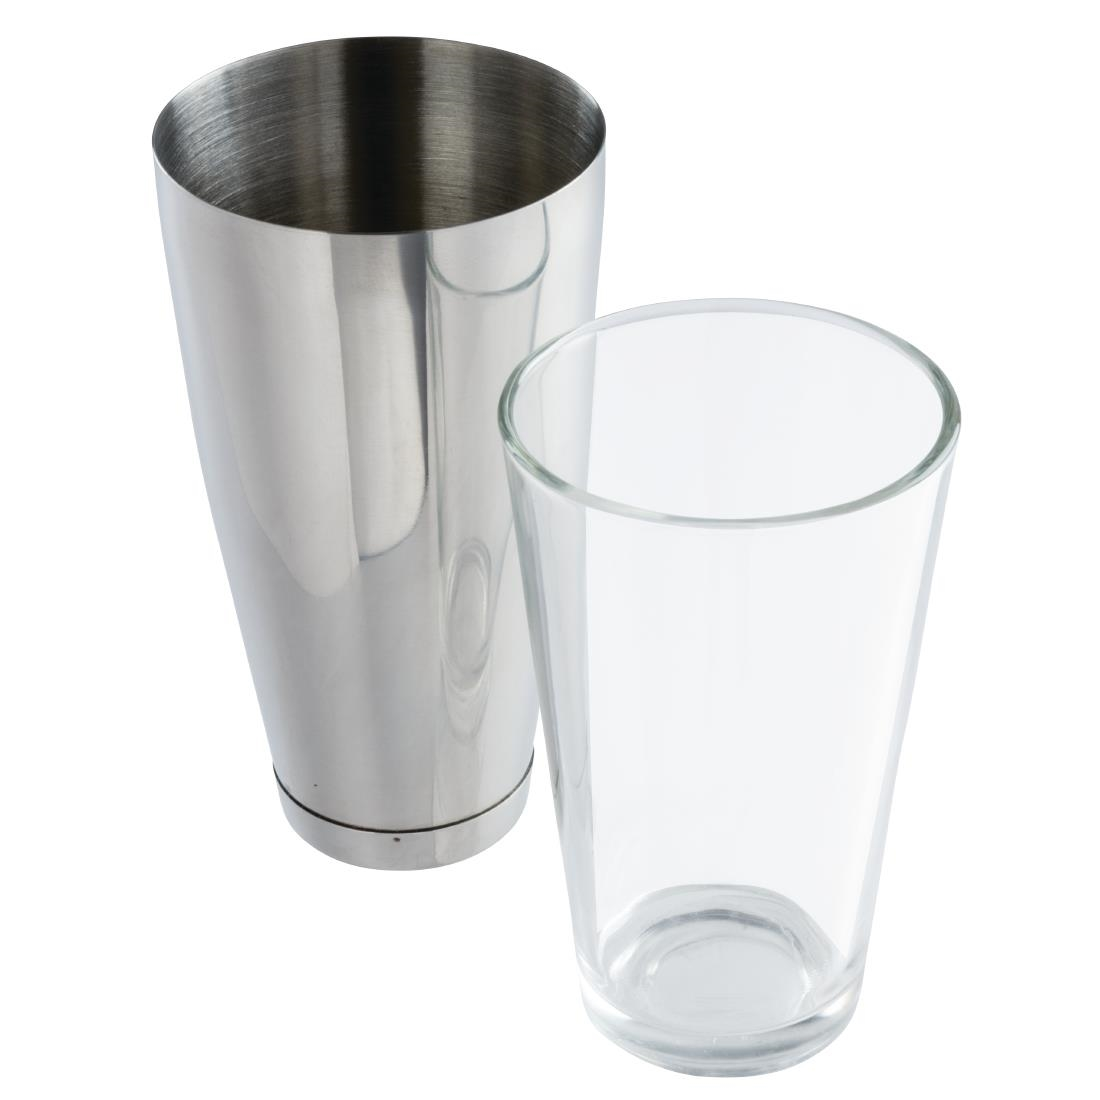 Image of APS Boston Shaker and Glass